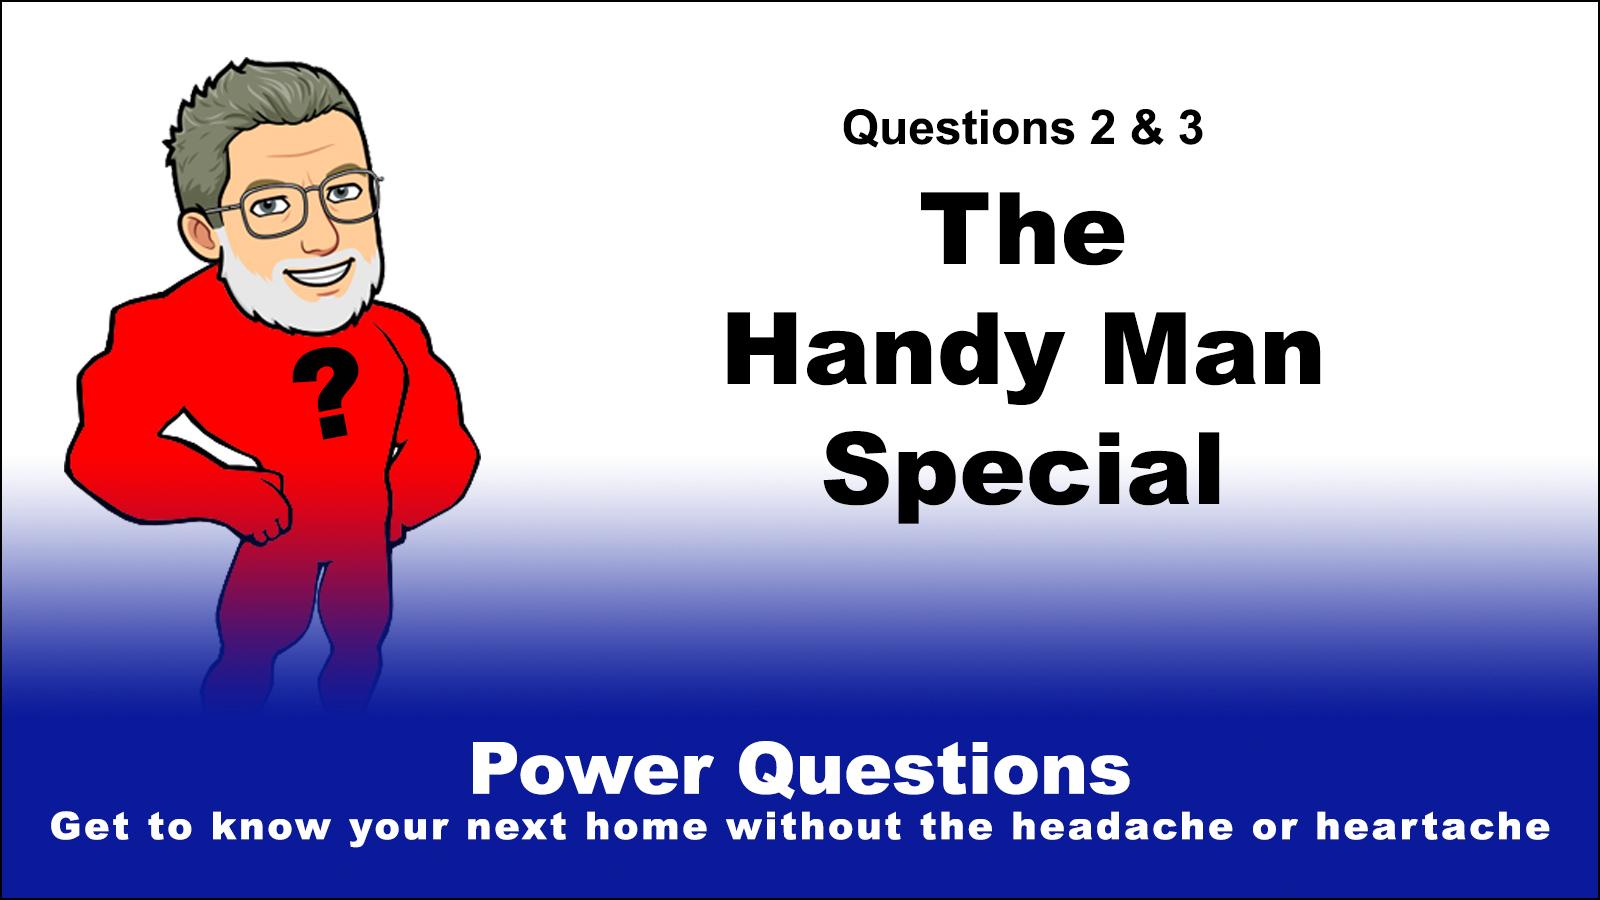 Power Questions 2 and 3: The Handy Man Special